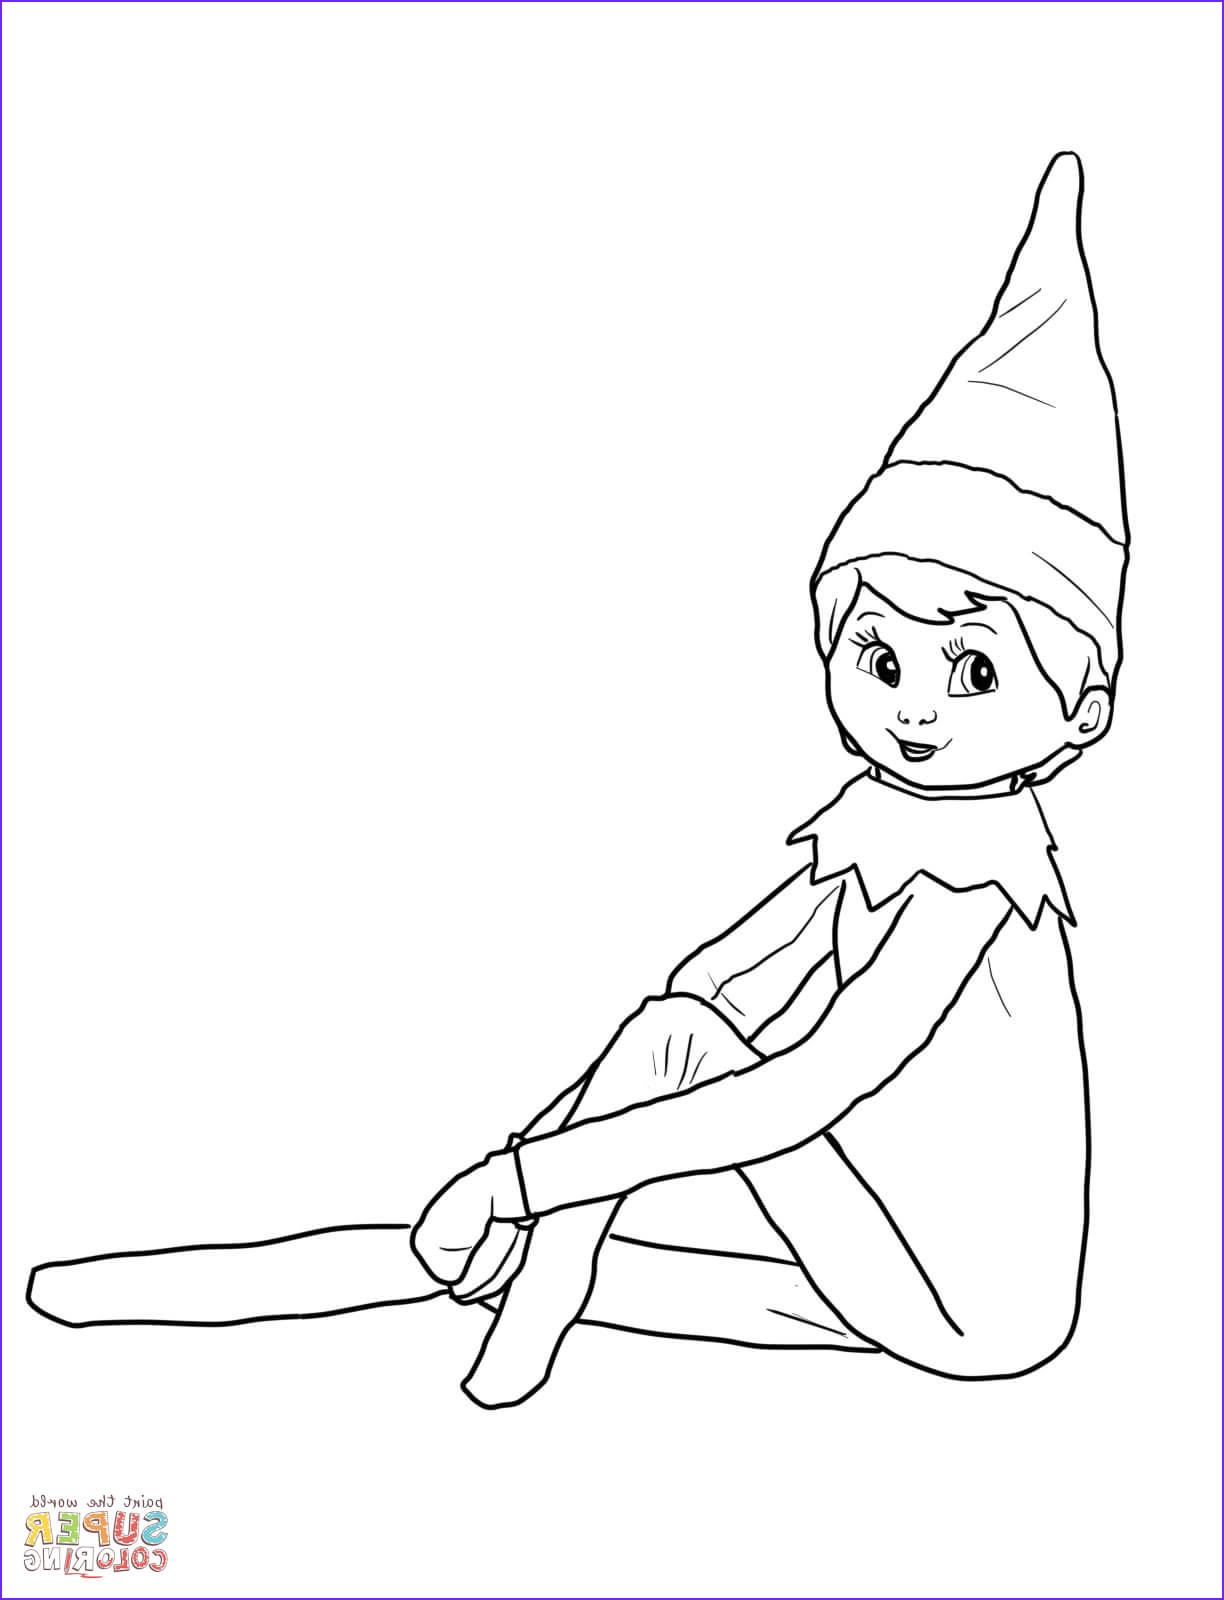 Elf On the Shelf Coloring Sheets Best Of Photos Elf On the Shelf Coloring Page